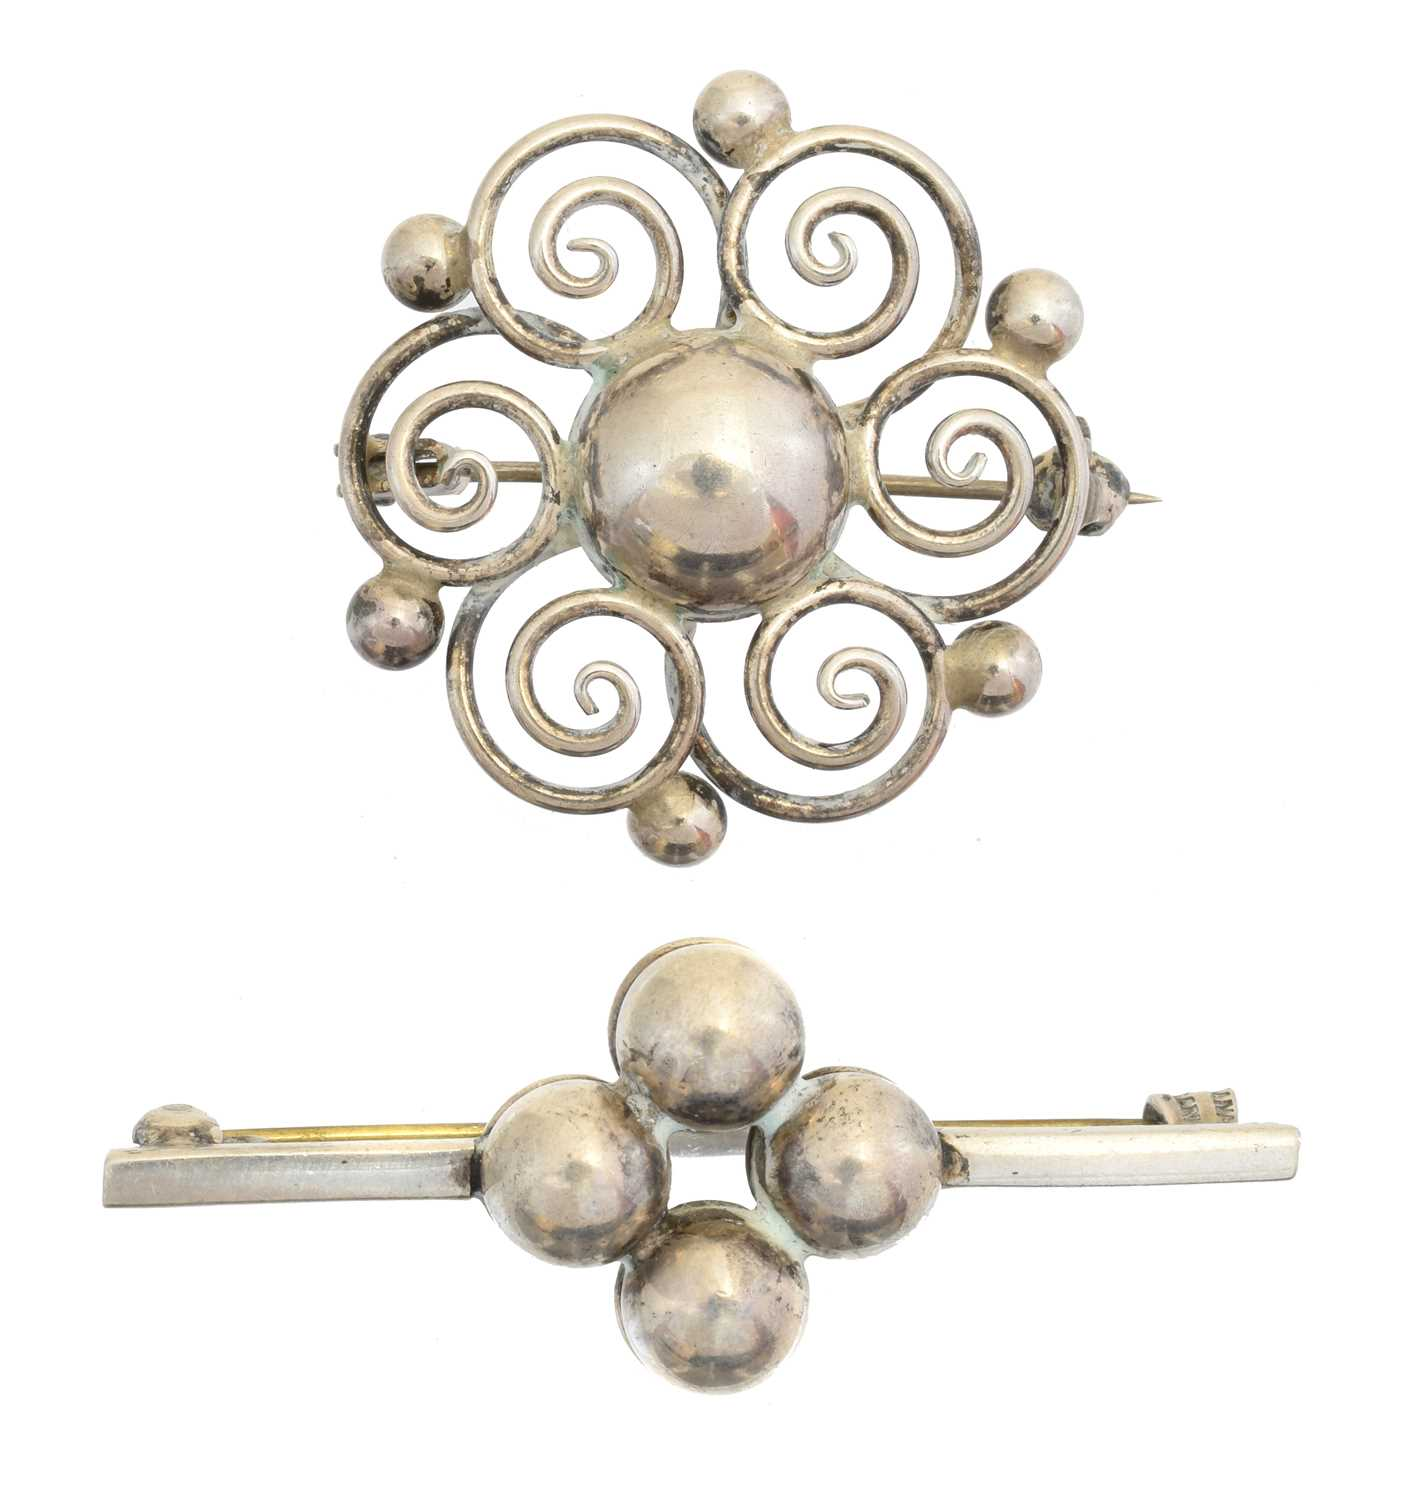 Two Danish silver brooches, the first by Hermann Siersbol, with scrolling design, the second by Sanino with polished quatrefoil design, each with maker's marks, stamped Denmark,